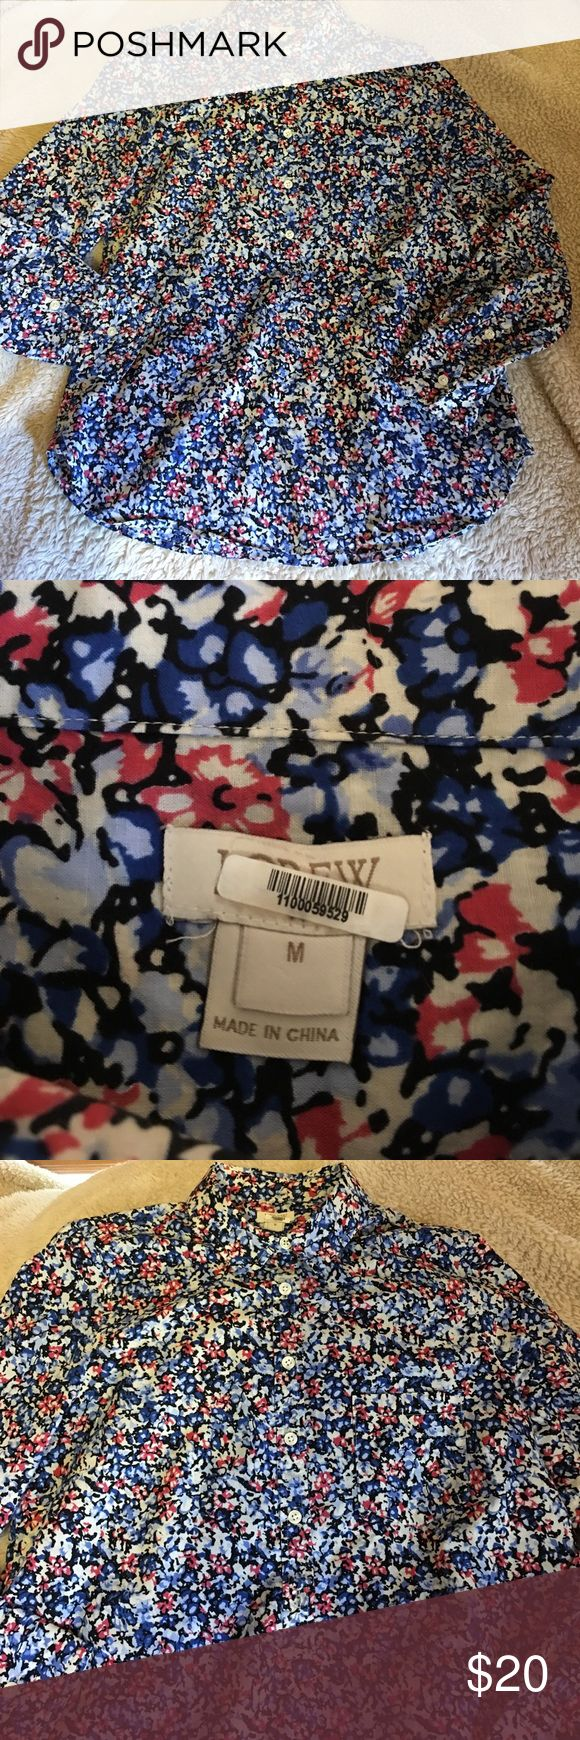 J Crew Floral Popover Shirt Size Medium J Crew Popover buttons halfway down.  Has a chest pocket.  Very pretty pattern, perfect for Summer. Still looks brand new always taken to cleaners.  Nonsmoking home.  Open to offers J. Crew Tops Button Down Shirts